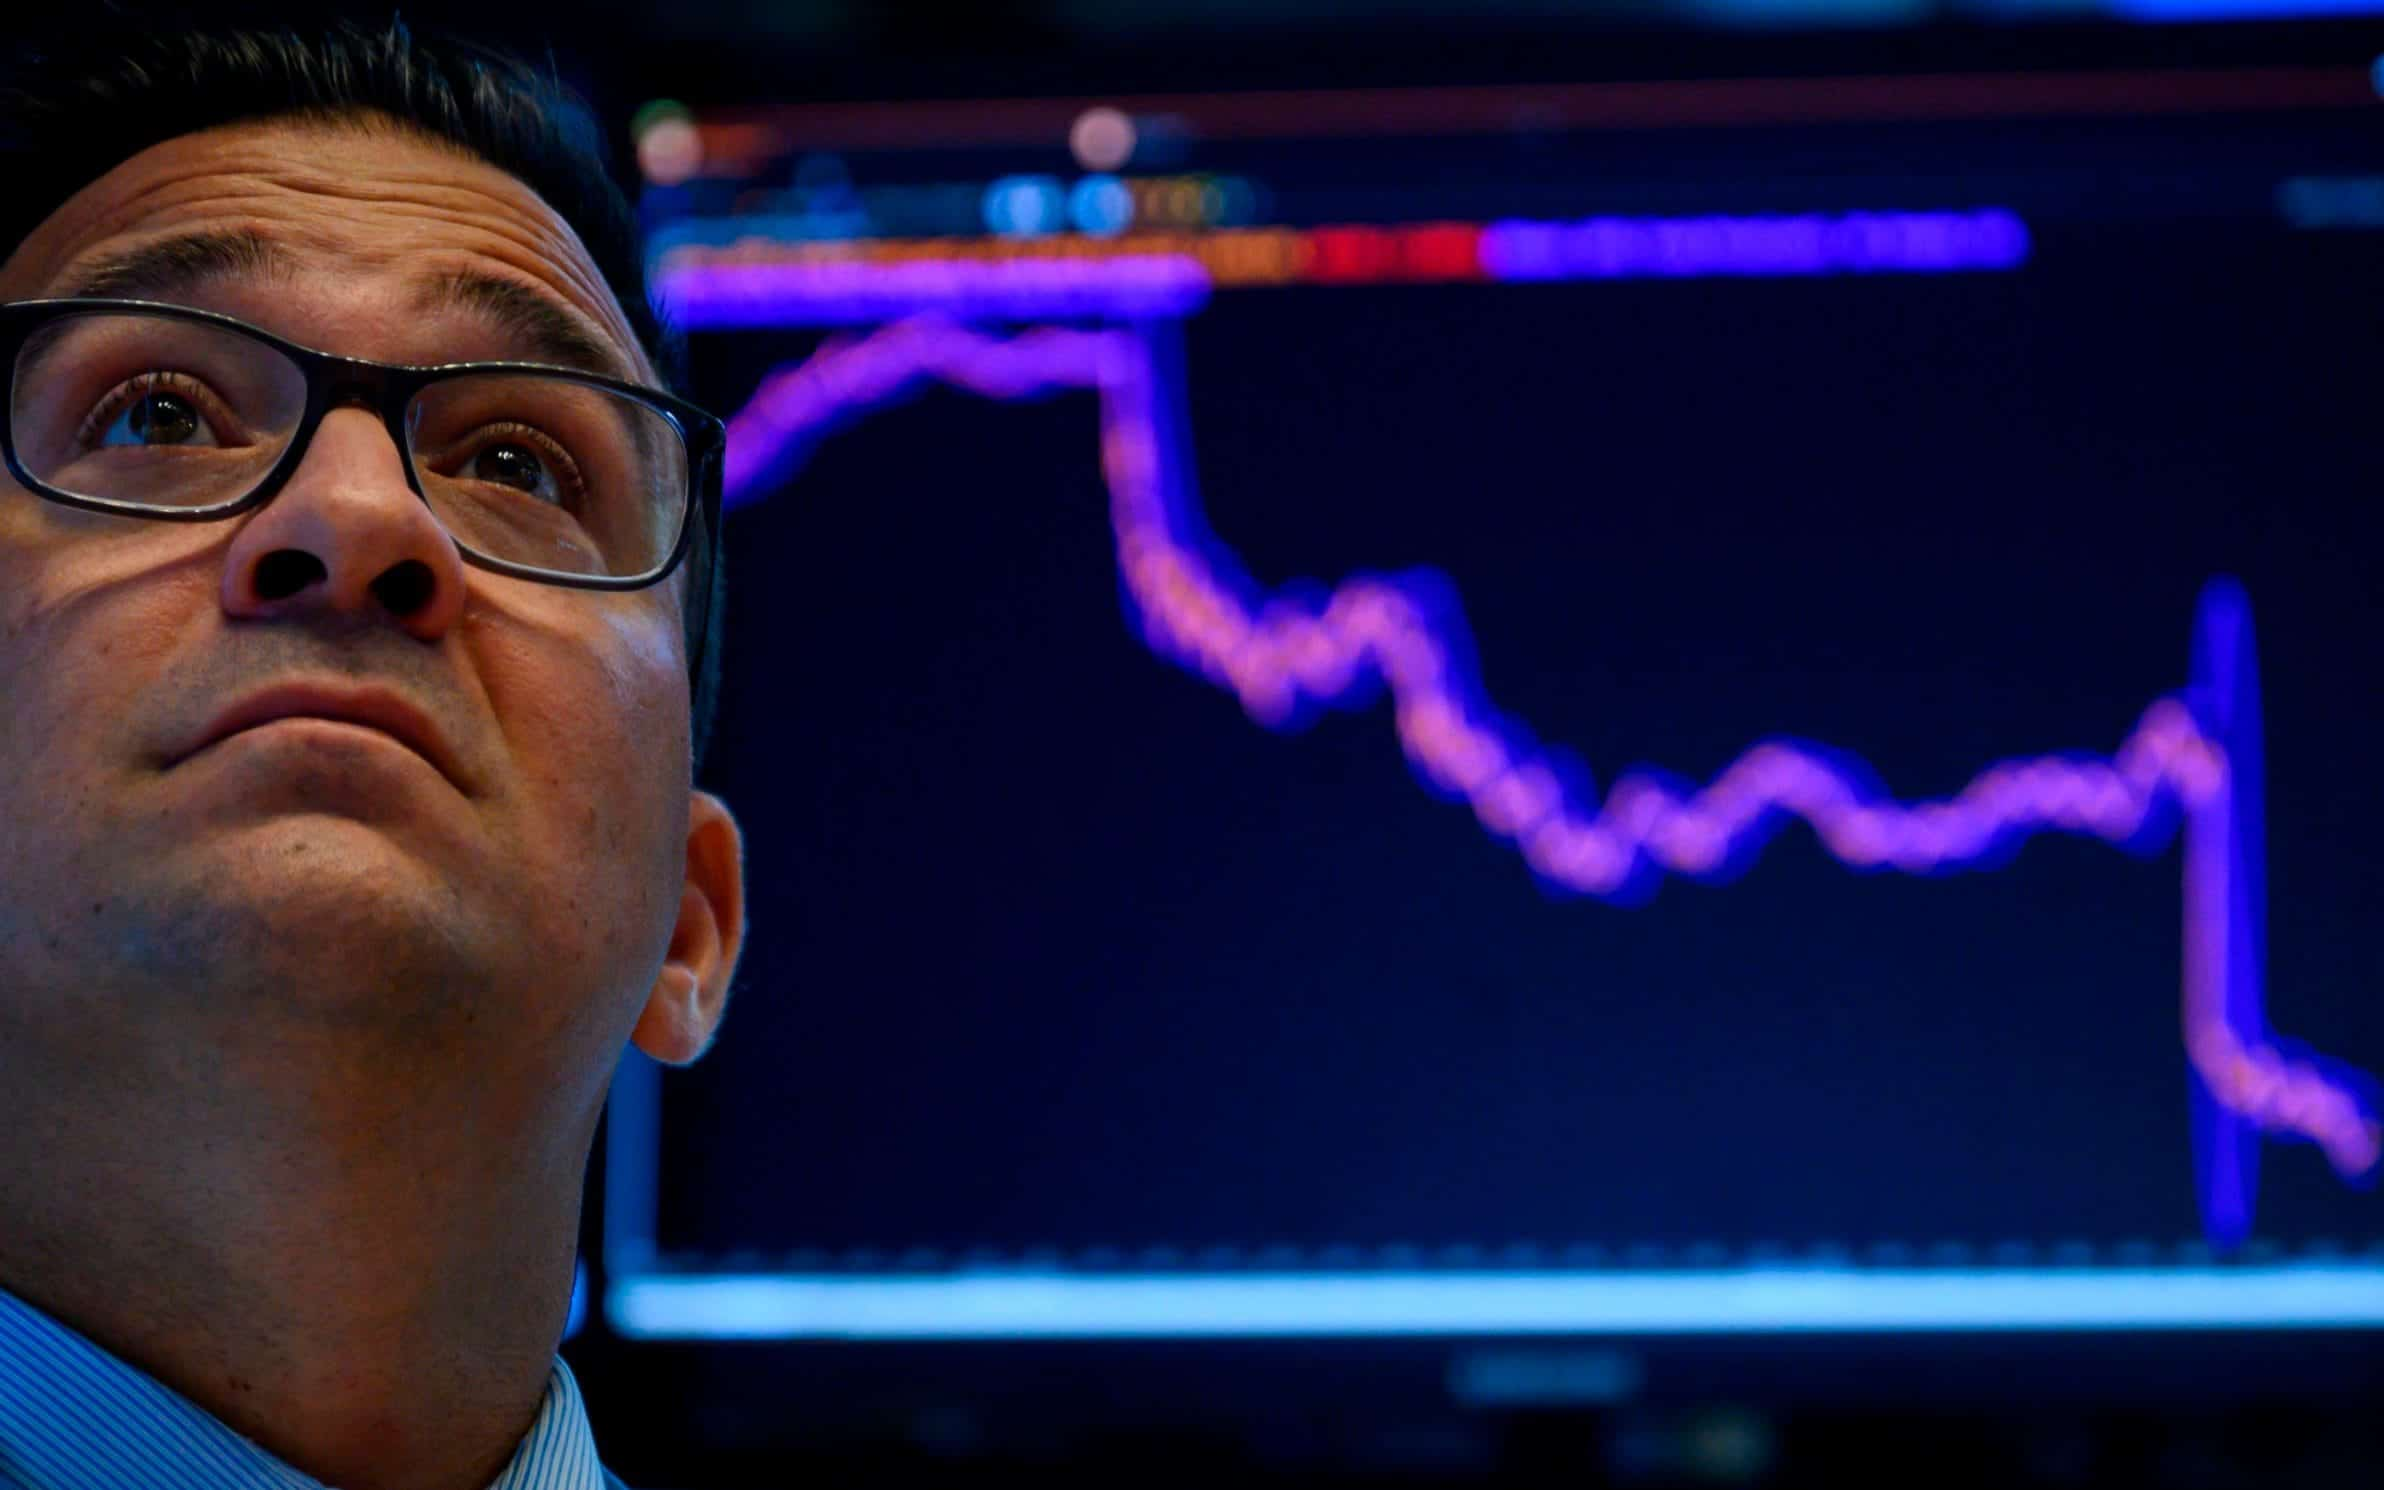 Global stocks rebounded after China stabilized its currency